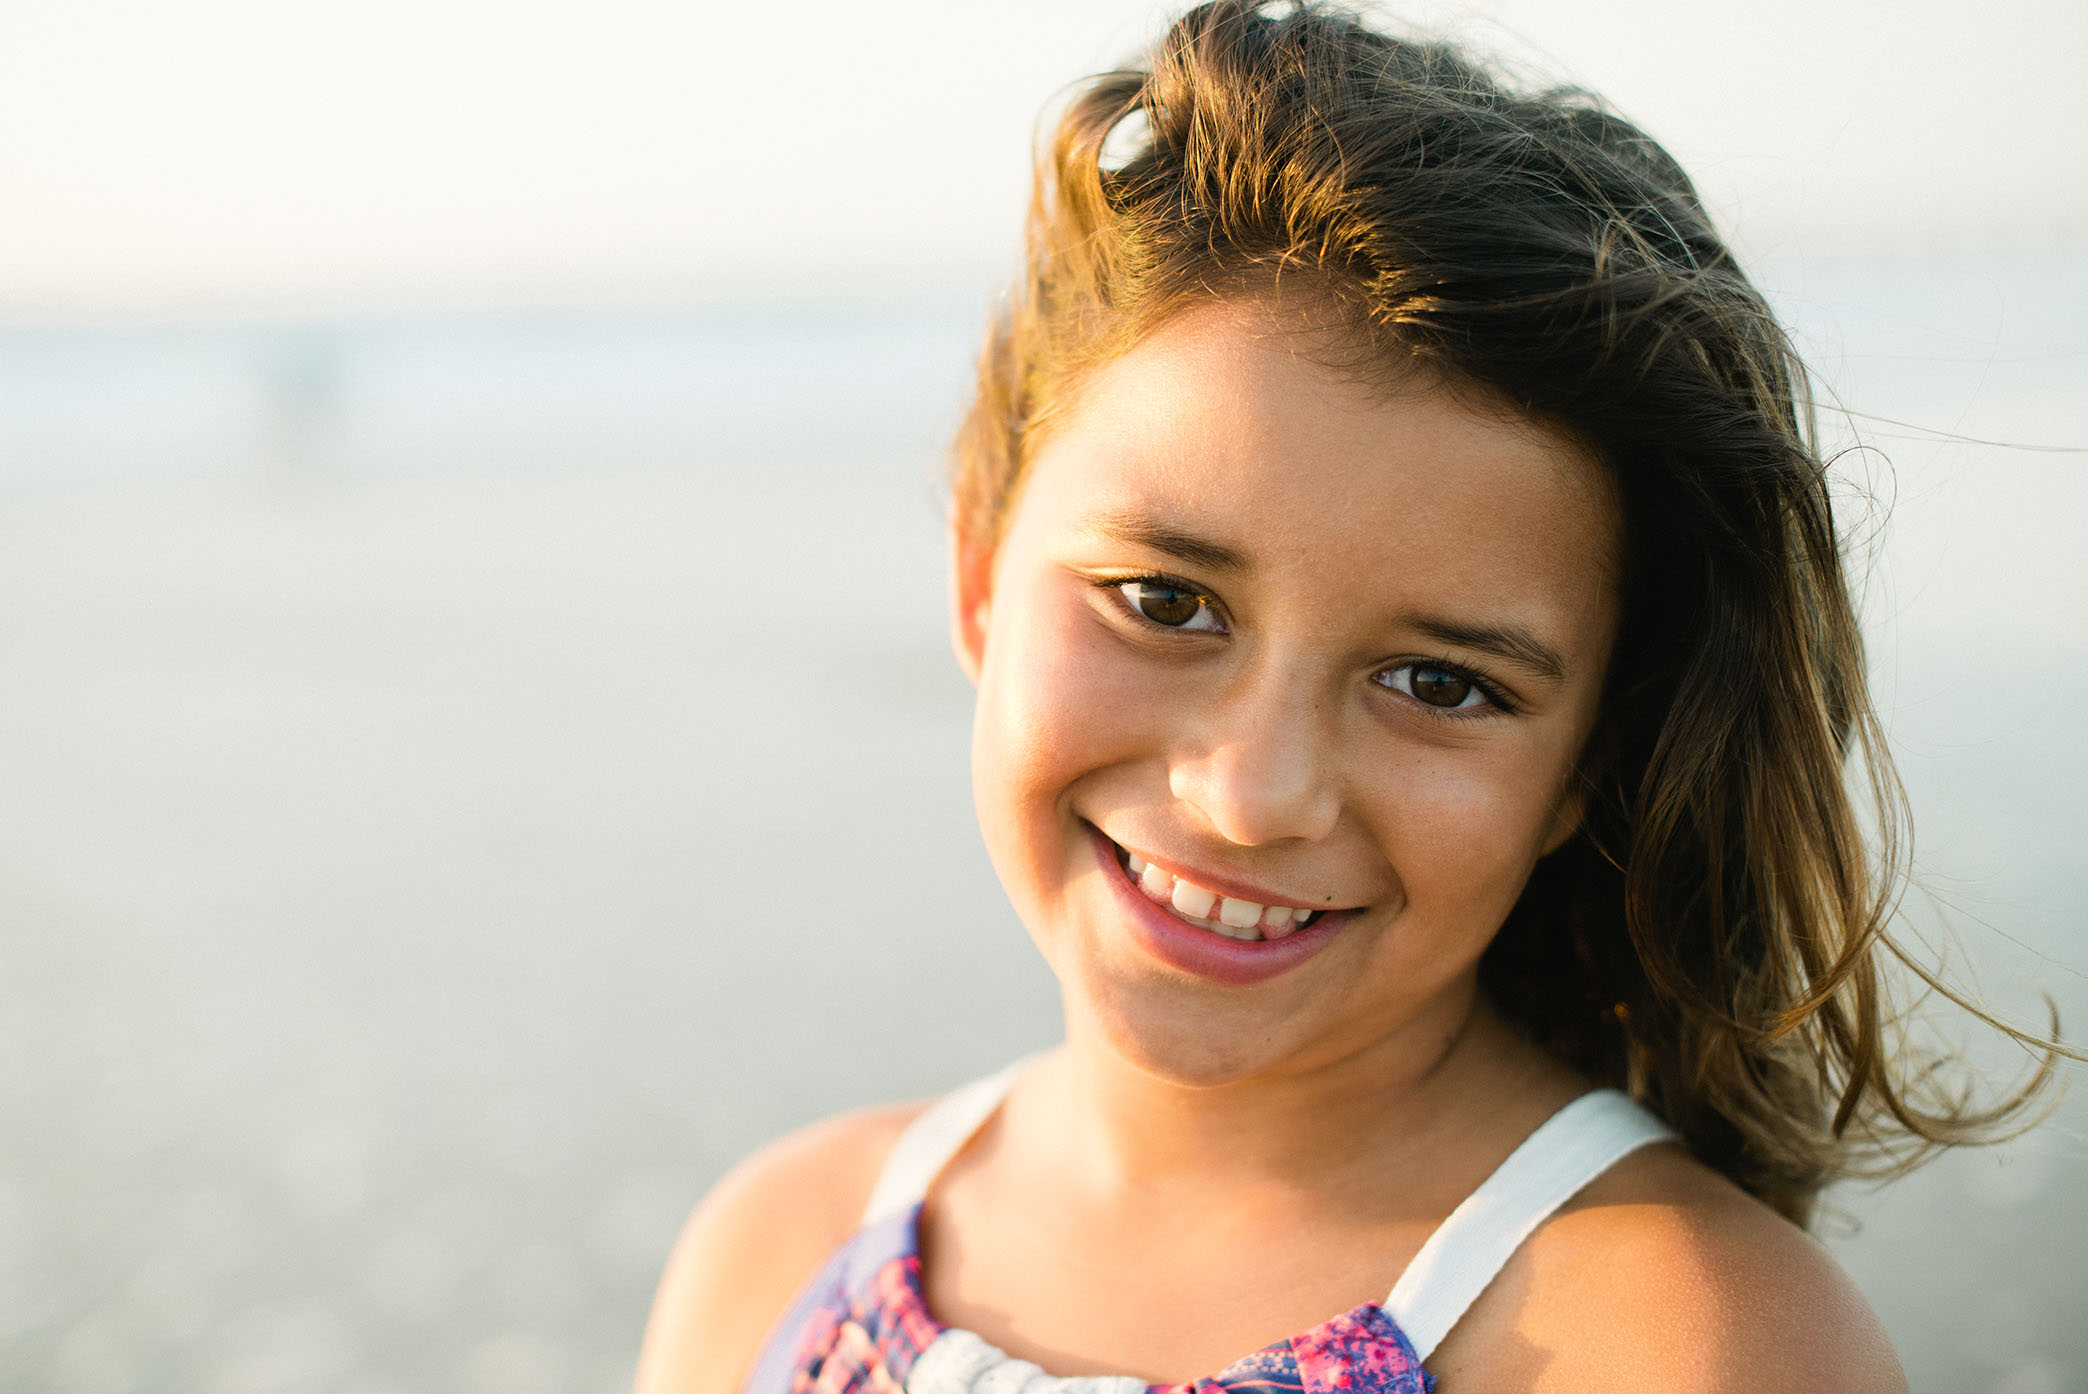 kid-portrait-hermosa-beach